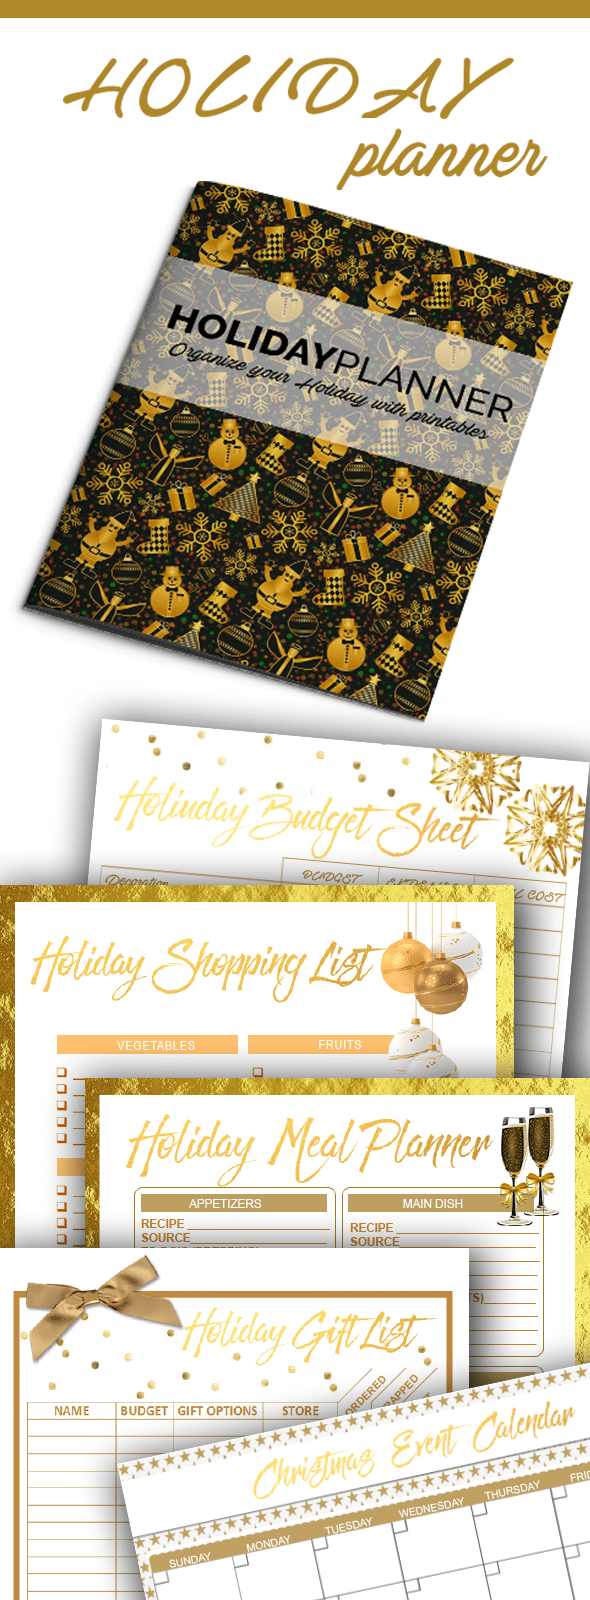 Printable Holiday Planner / You'll love these printable organization sheets and lists to get your holiday more organized. Budget sheet, gift list, menu planning, event calendar and shopping lists!